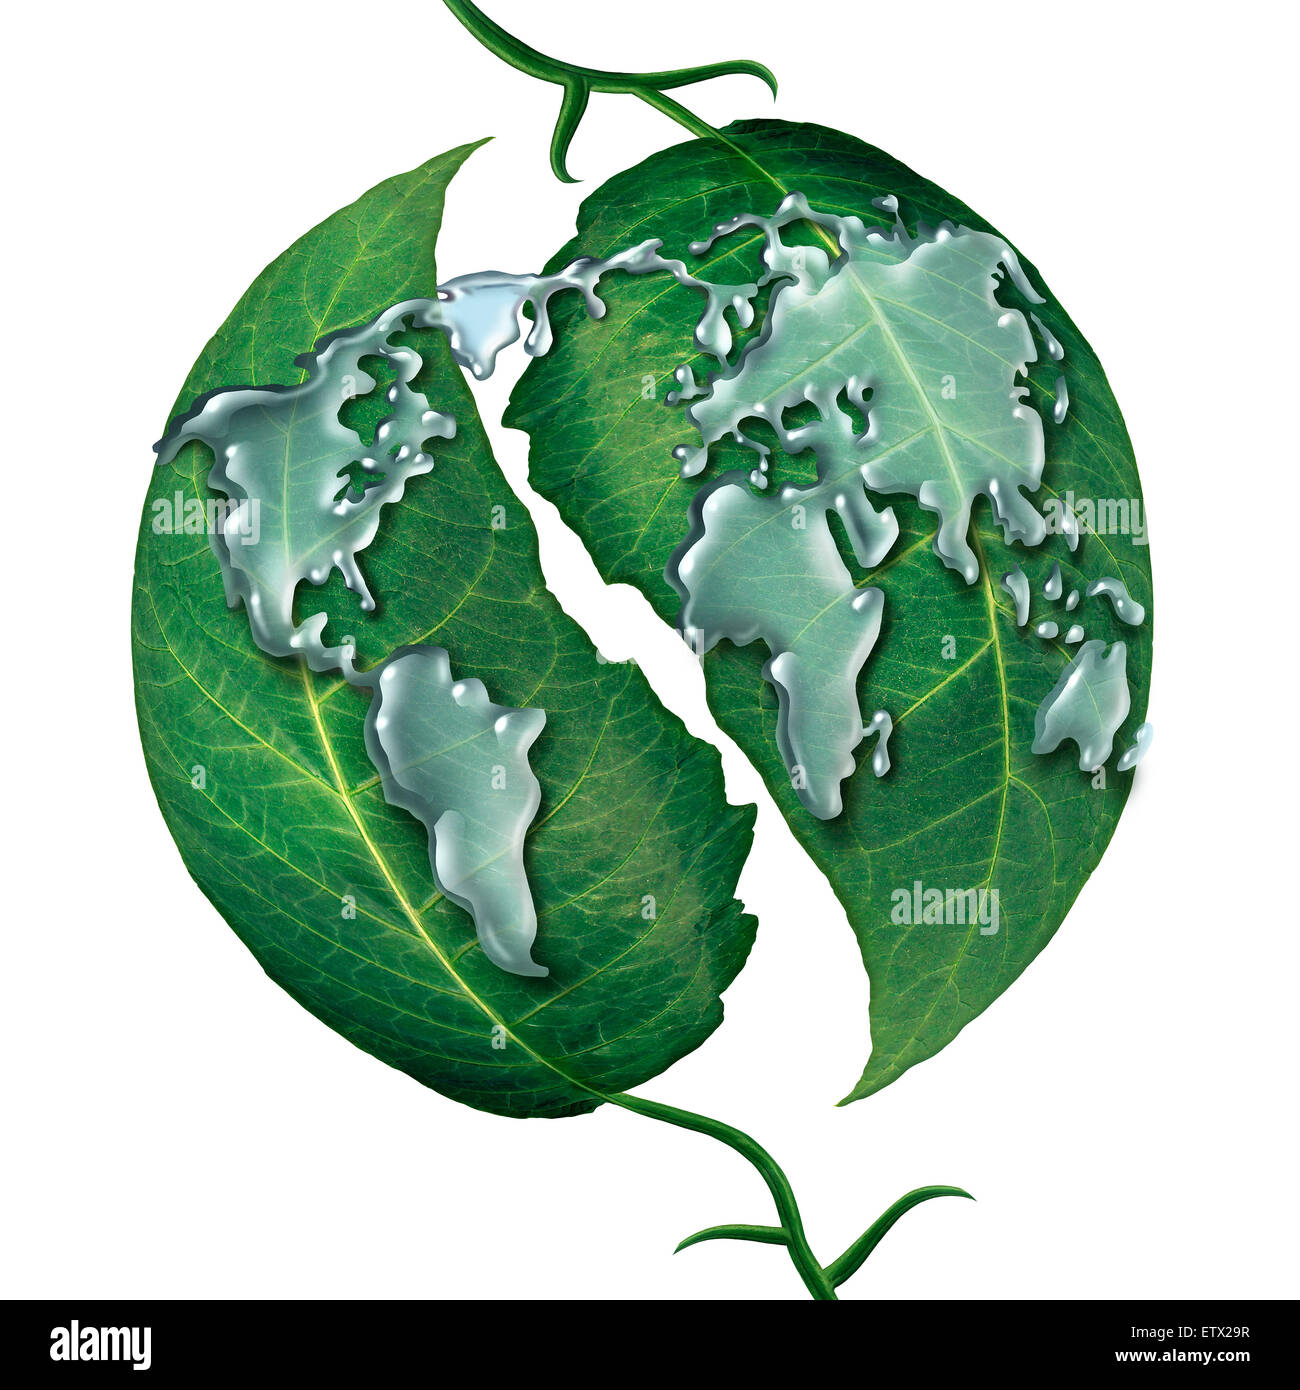 World leaf water drop concept as a group of liquid rain drops shaped as  the map of the earrth on green leaves as - Stock Image